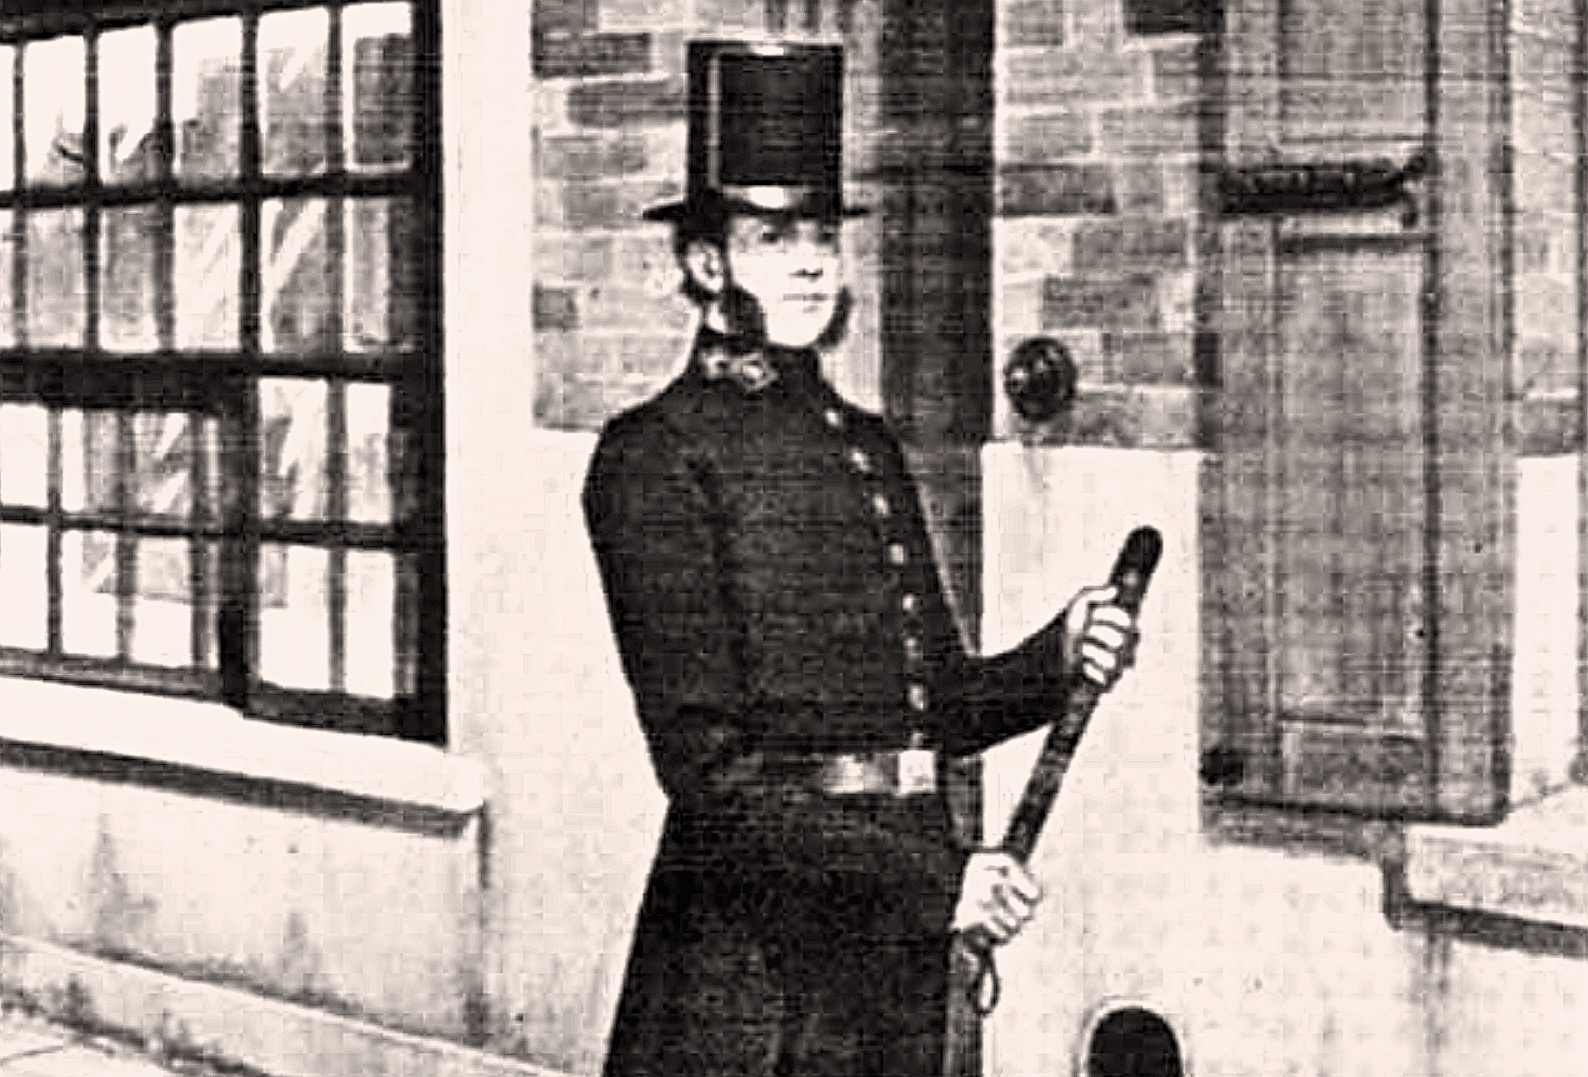 An early 19th century police officer